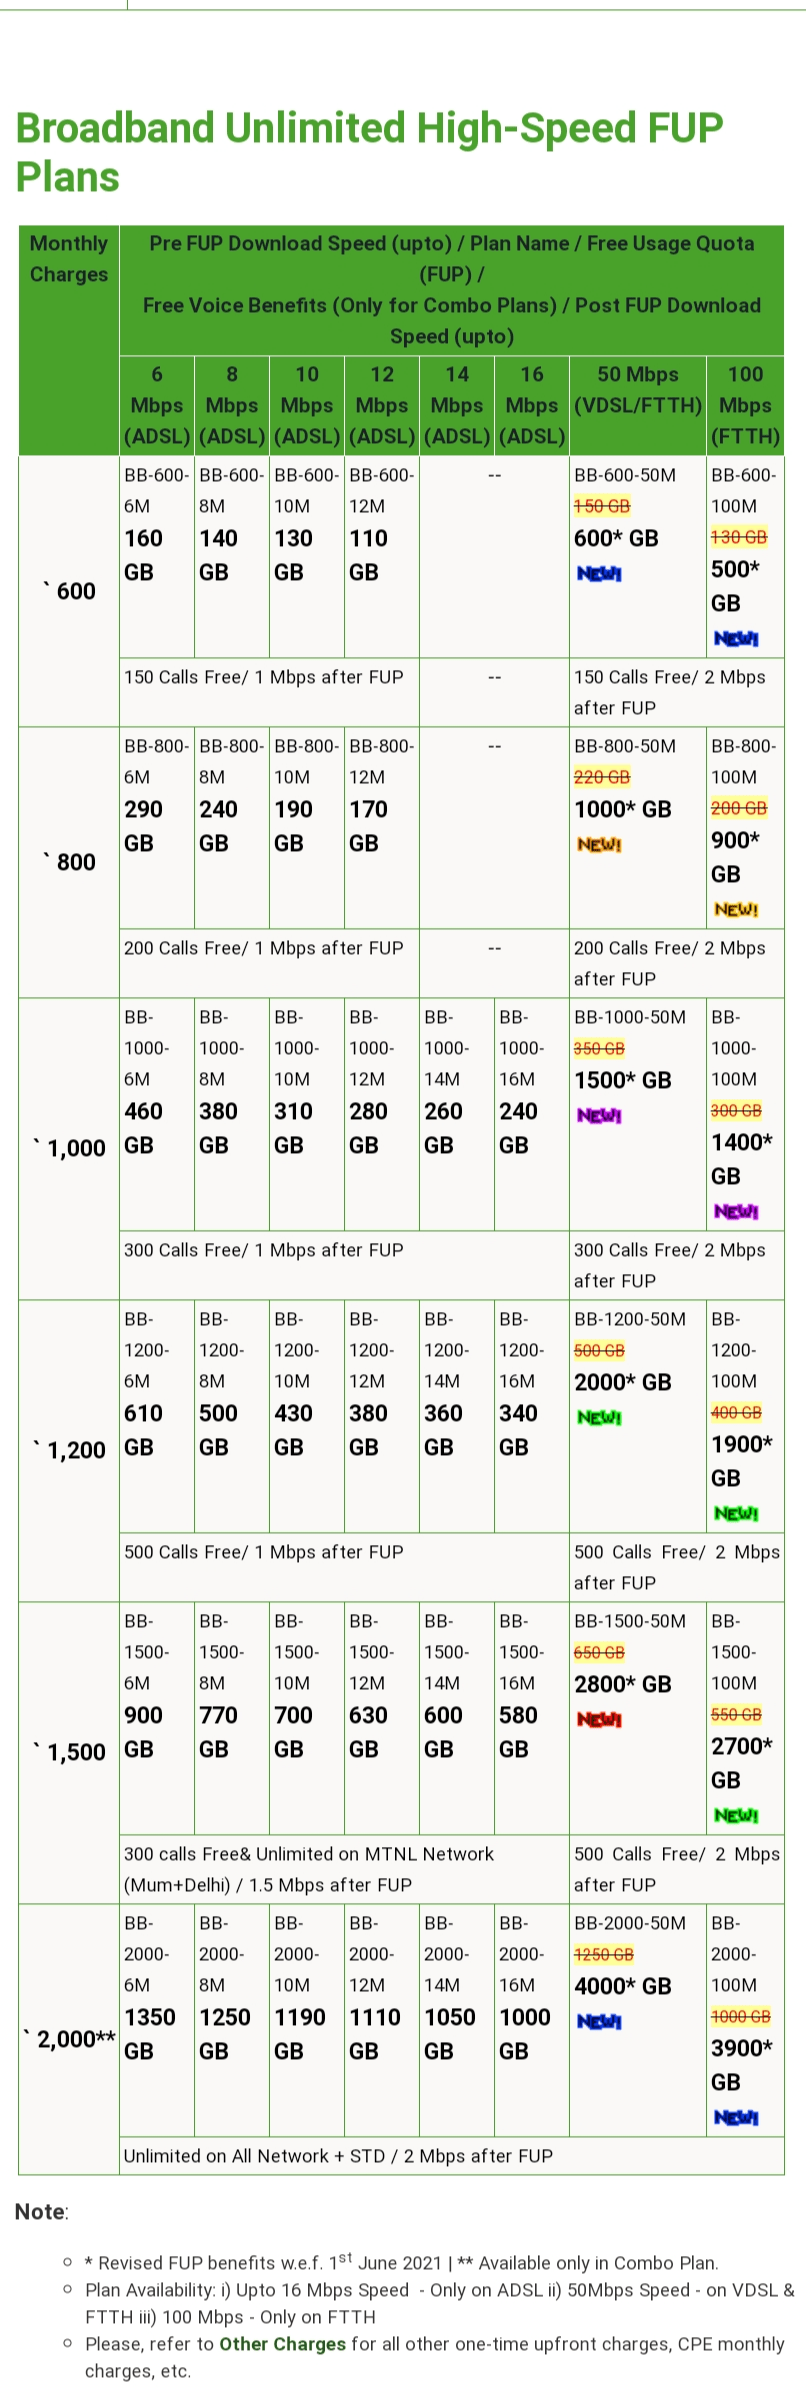 MTNL Mumbai brings multifold increase in FUP limits for existing FTTH customers